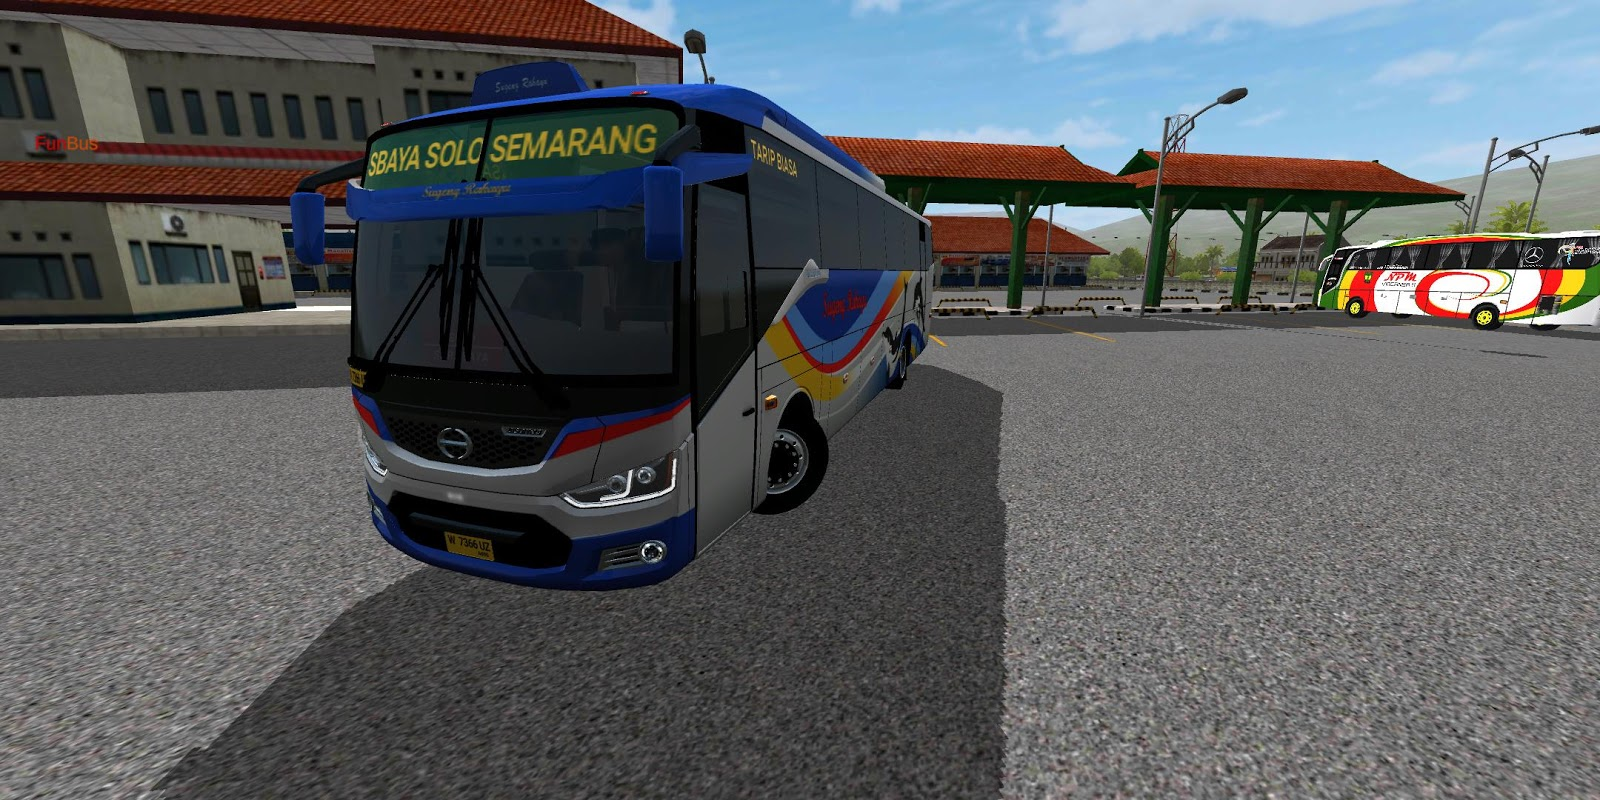 Download Update Discovery 3 Vehicle Mod for Bus Simulator Indonesia, Discovery 3, Bus Mod, Bus Simulator Indonesia Mod, BUSSID mod, Discovery 3, Discovery 3 Mod, Discovery 3 Vehicle Mod, Download Discovery 3 Mod for BUSSID, Mod for BUSSID, SGCArena, Vehicle Mod, WSPMods